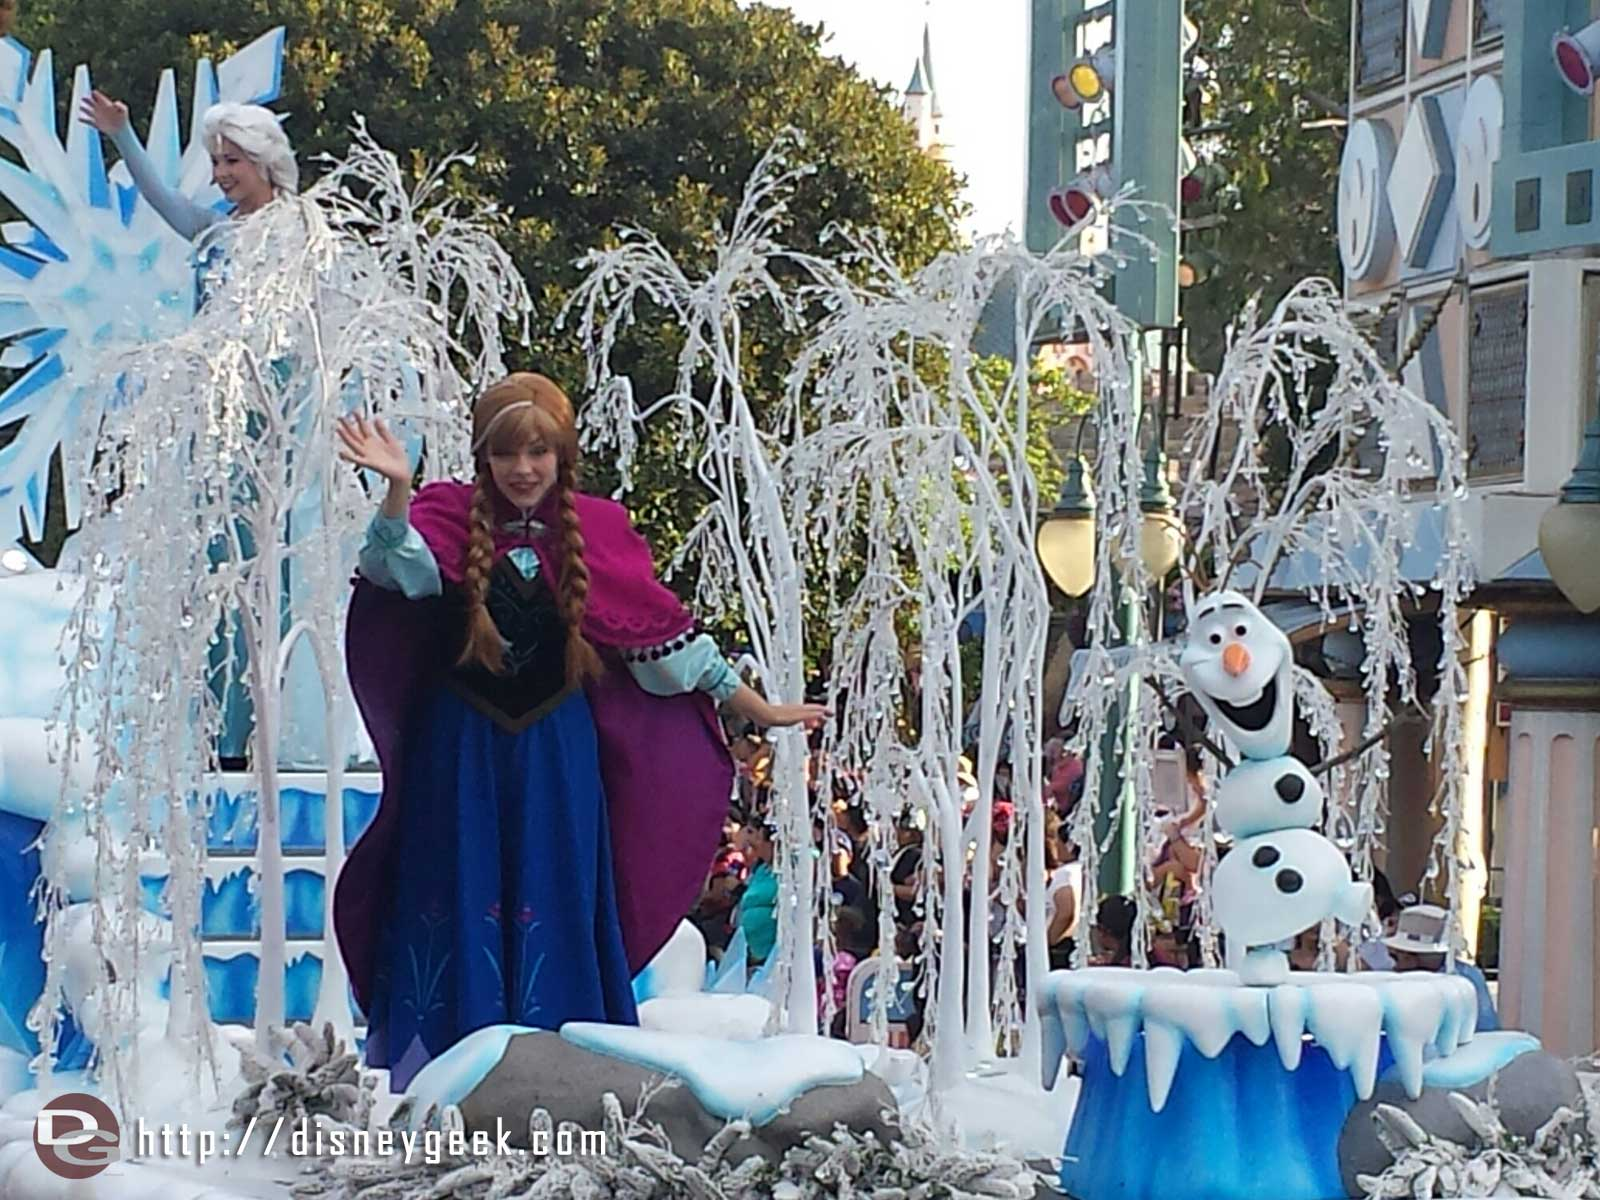 The #Frozen preparade ran before both Soundsational parades today – Anna, Elsa & Olaf #Disneyland